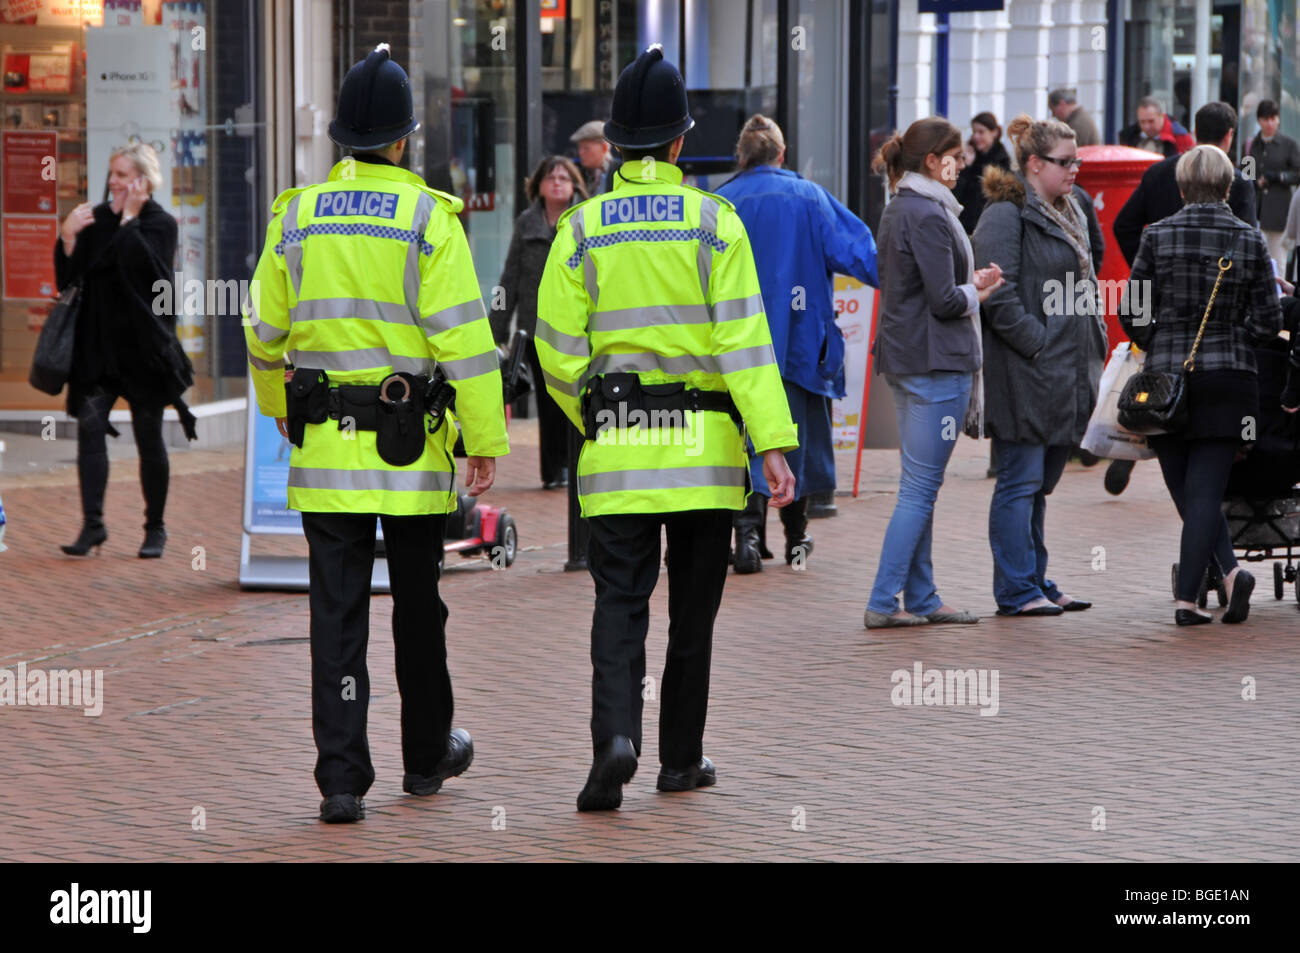 Two policemen on patrol in busy shopping high street - Stock Image